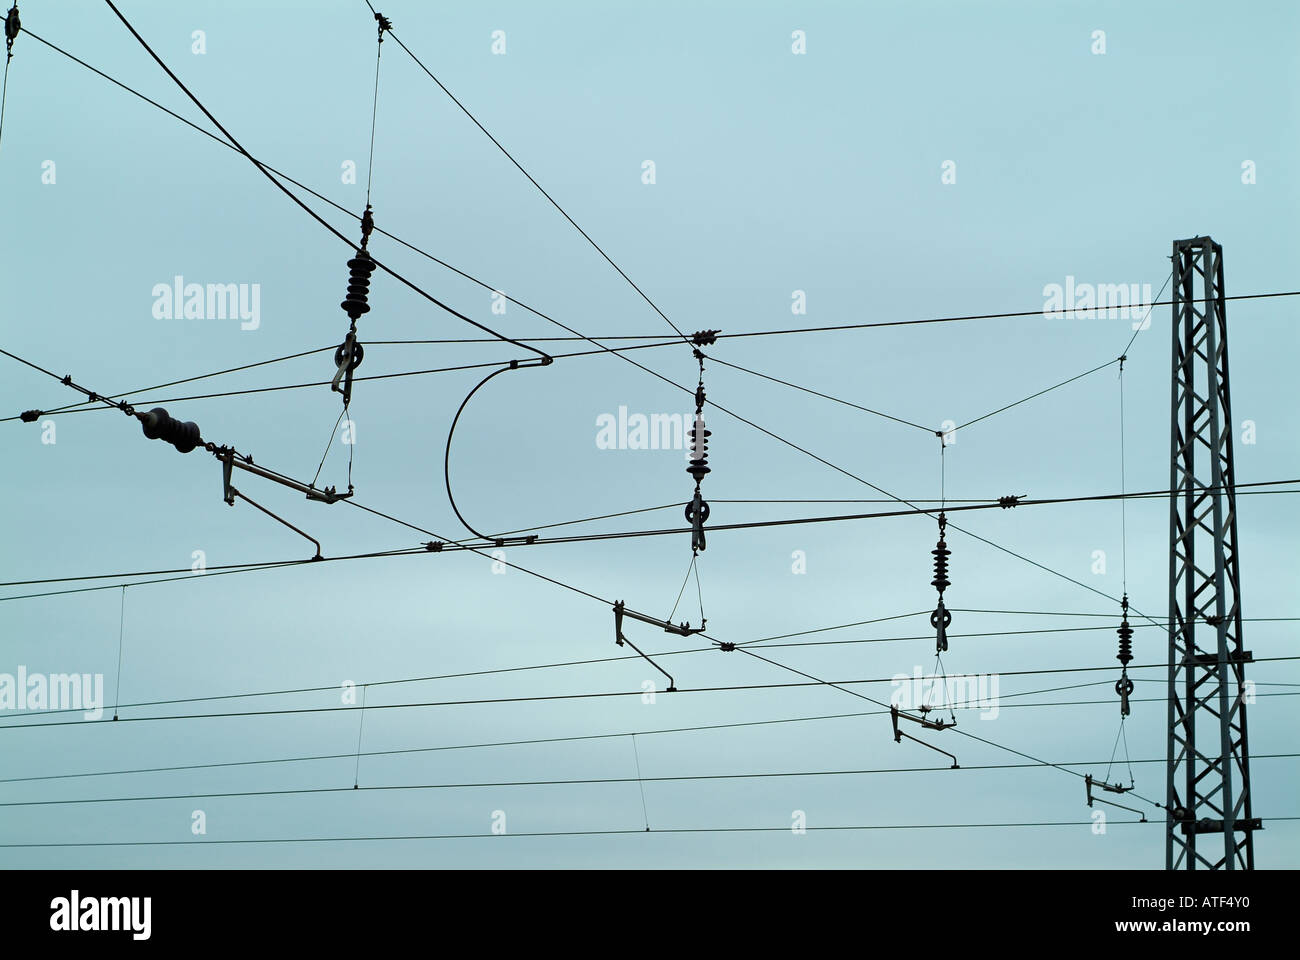 Power Lines for a Trains Over a Rail Network - Stock Image